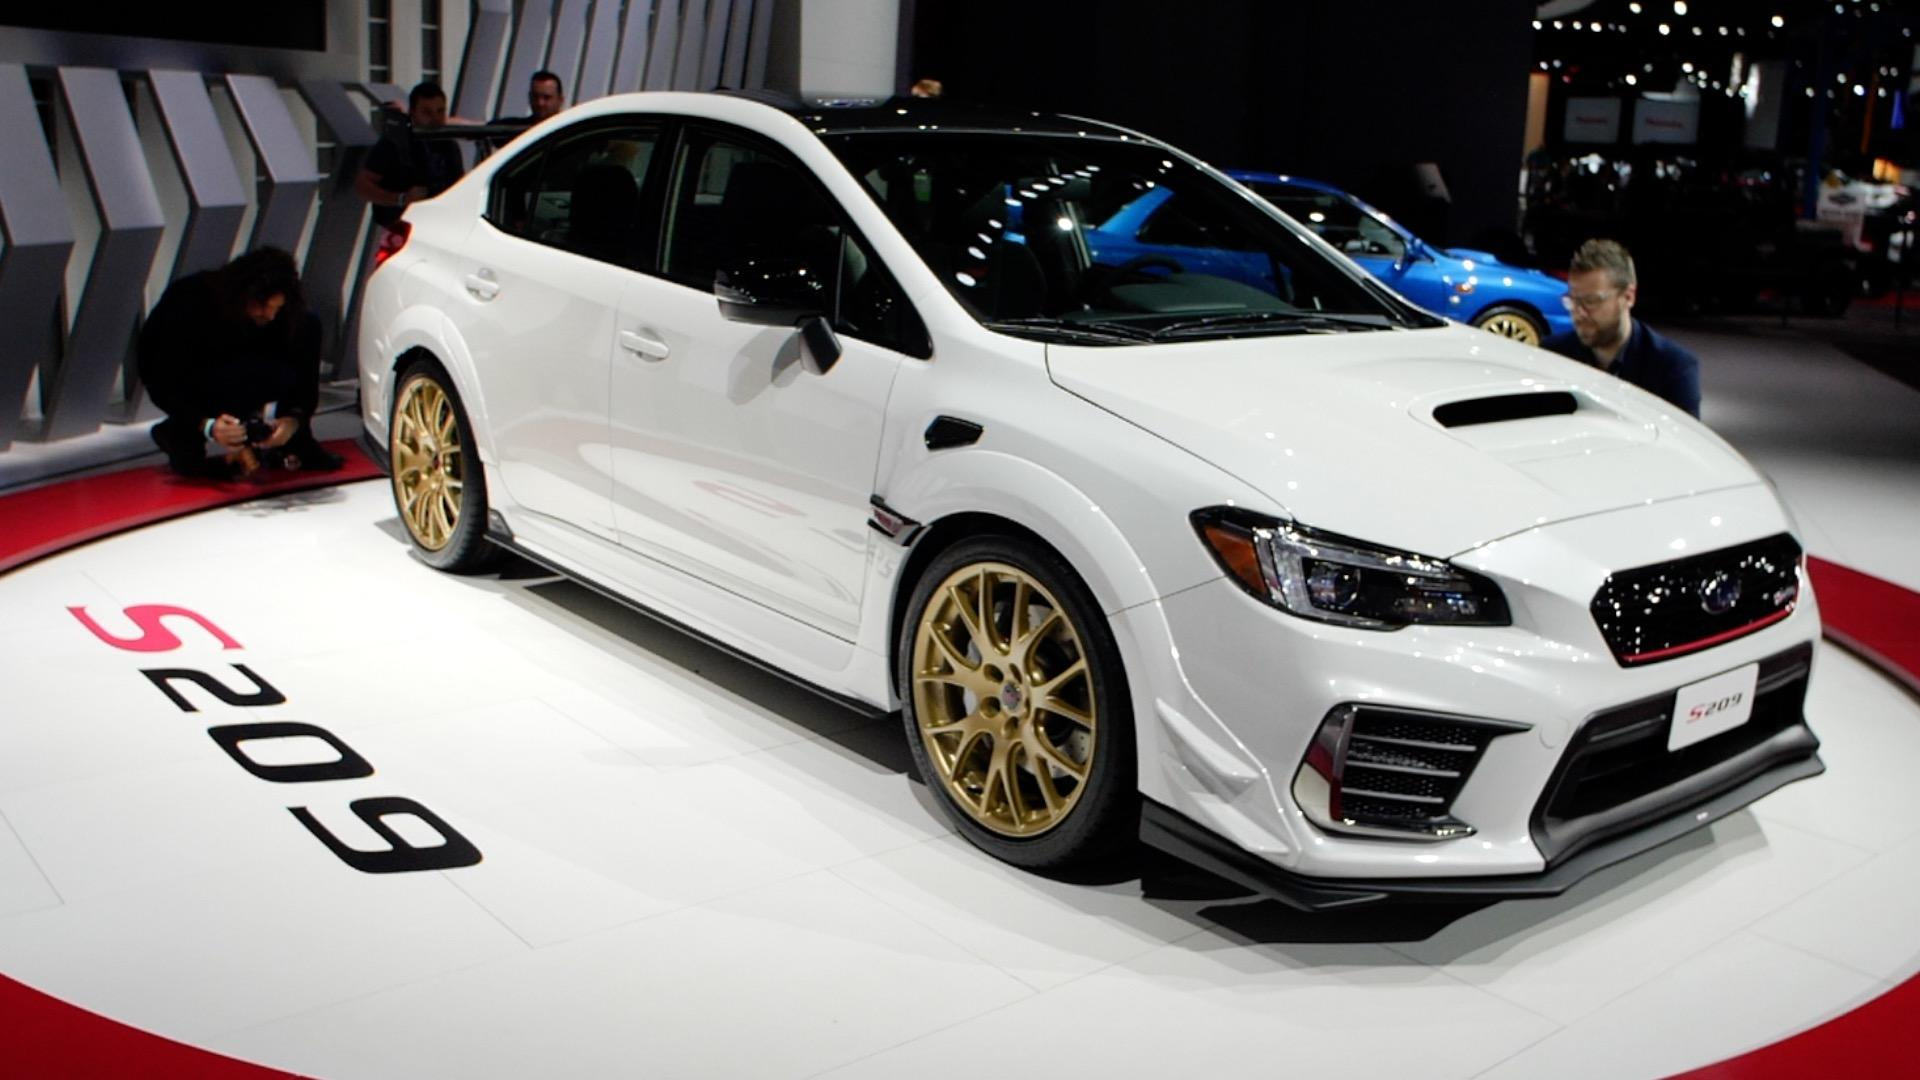 Video: Subaru WRX STI S209 is the most powerful STI ever